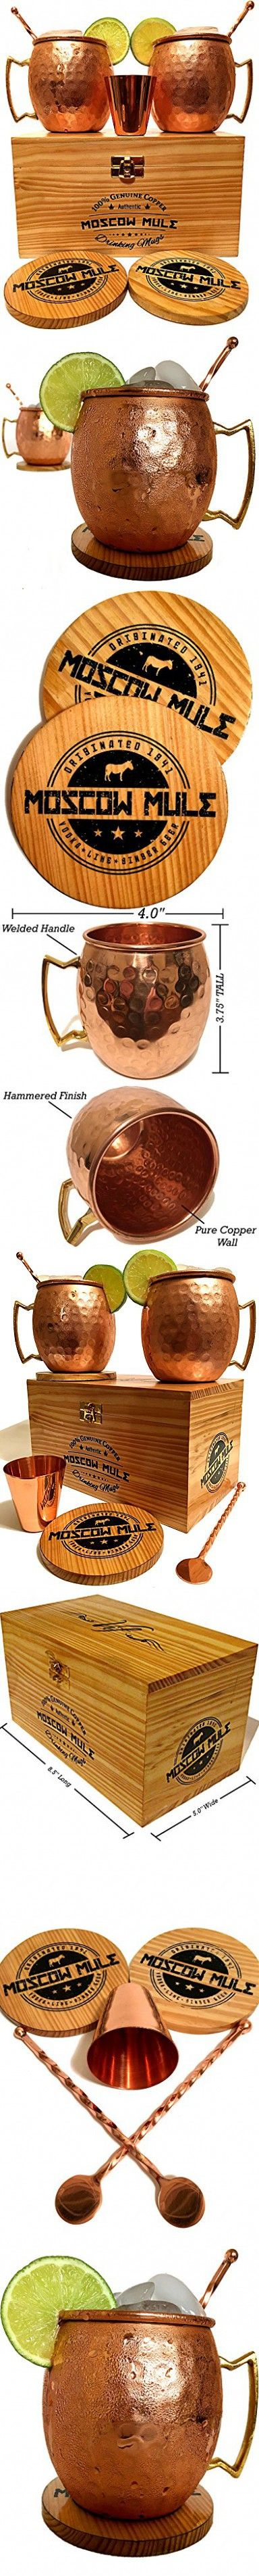 Moscow Mule Copper Mugs Gift Set of two 16 Oz. Cups, 1 Shot Glass, 2 Stirrers, 2 Wooden Coasters & Premium Crate by Vif | Authentic 100% Pure Solid Copper Drinking Glasses with Welded Handles